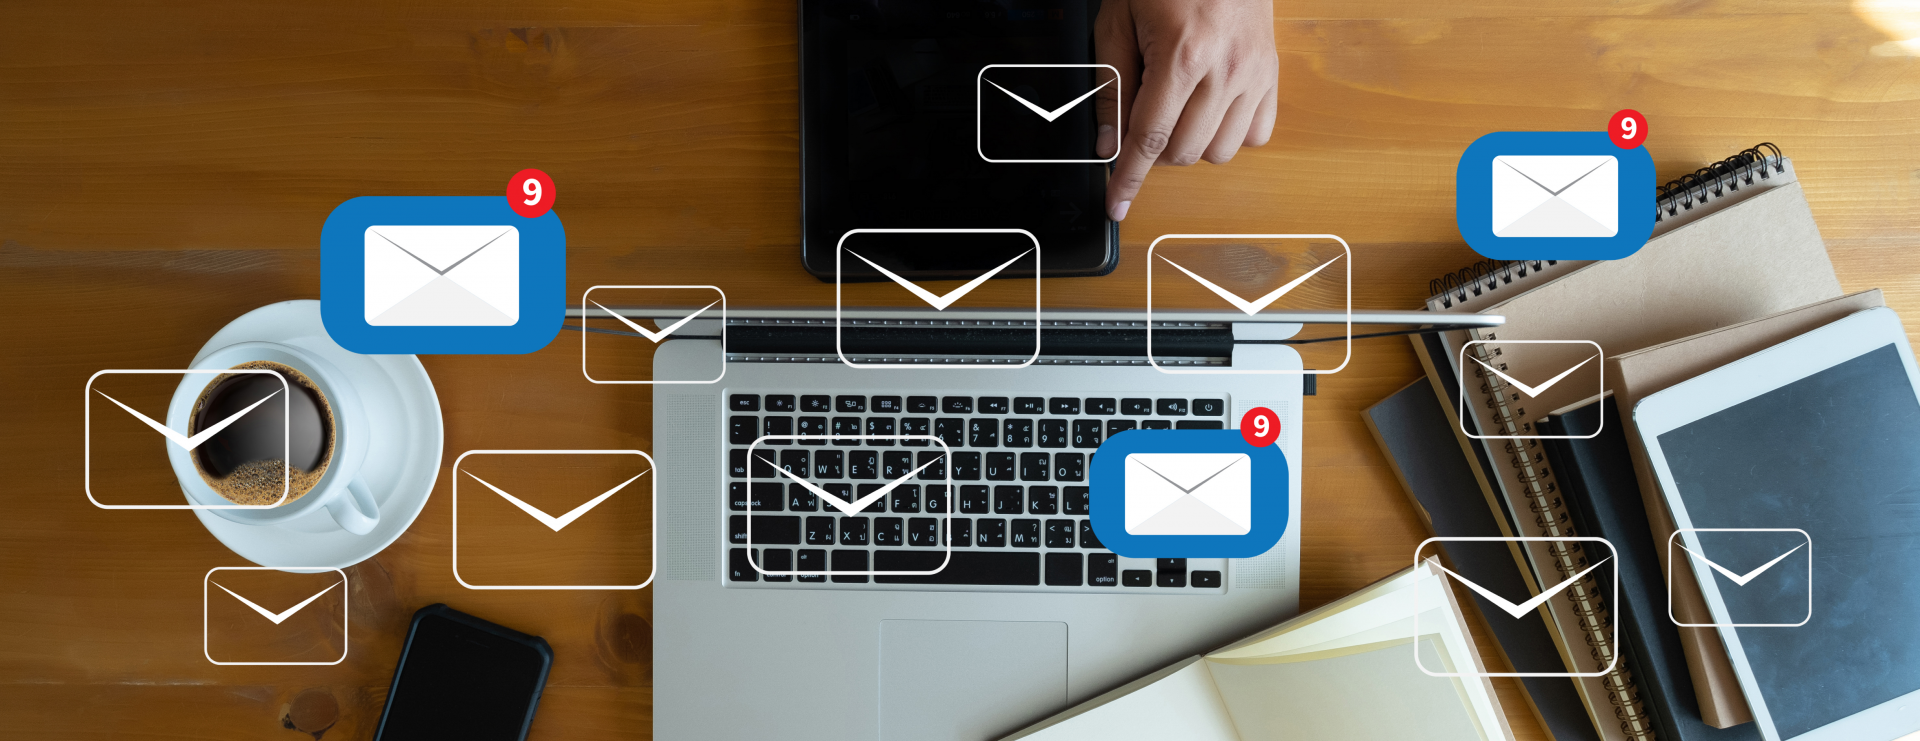 email icons - email marketing services concept